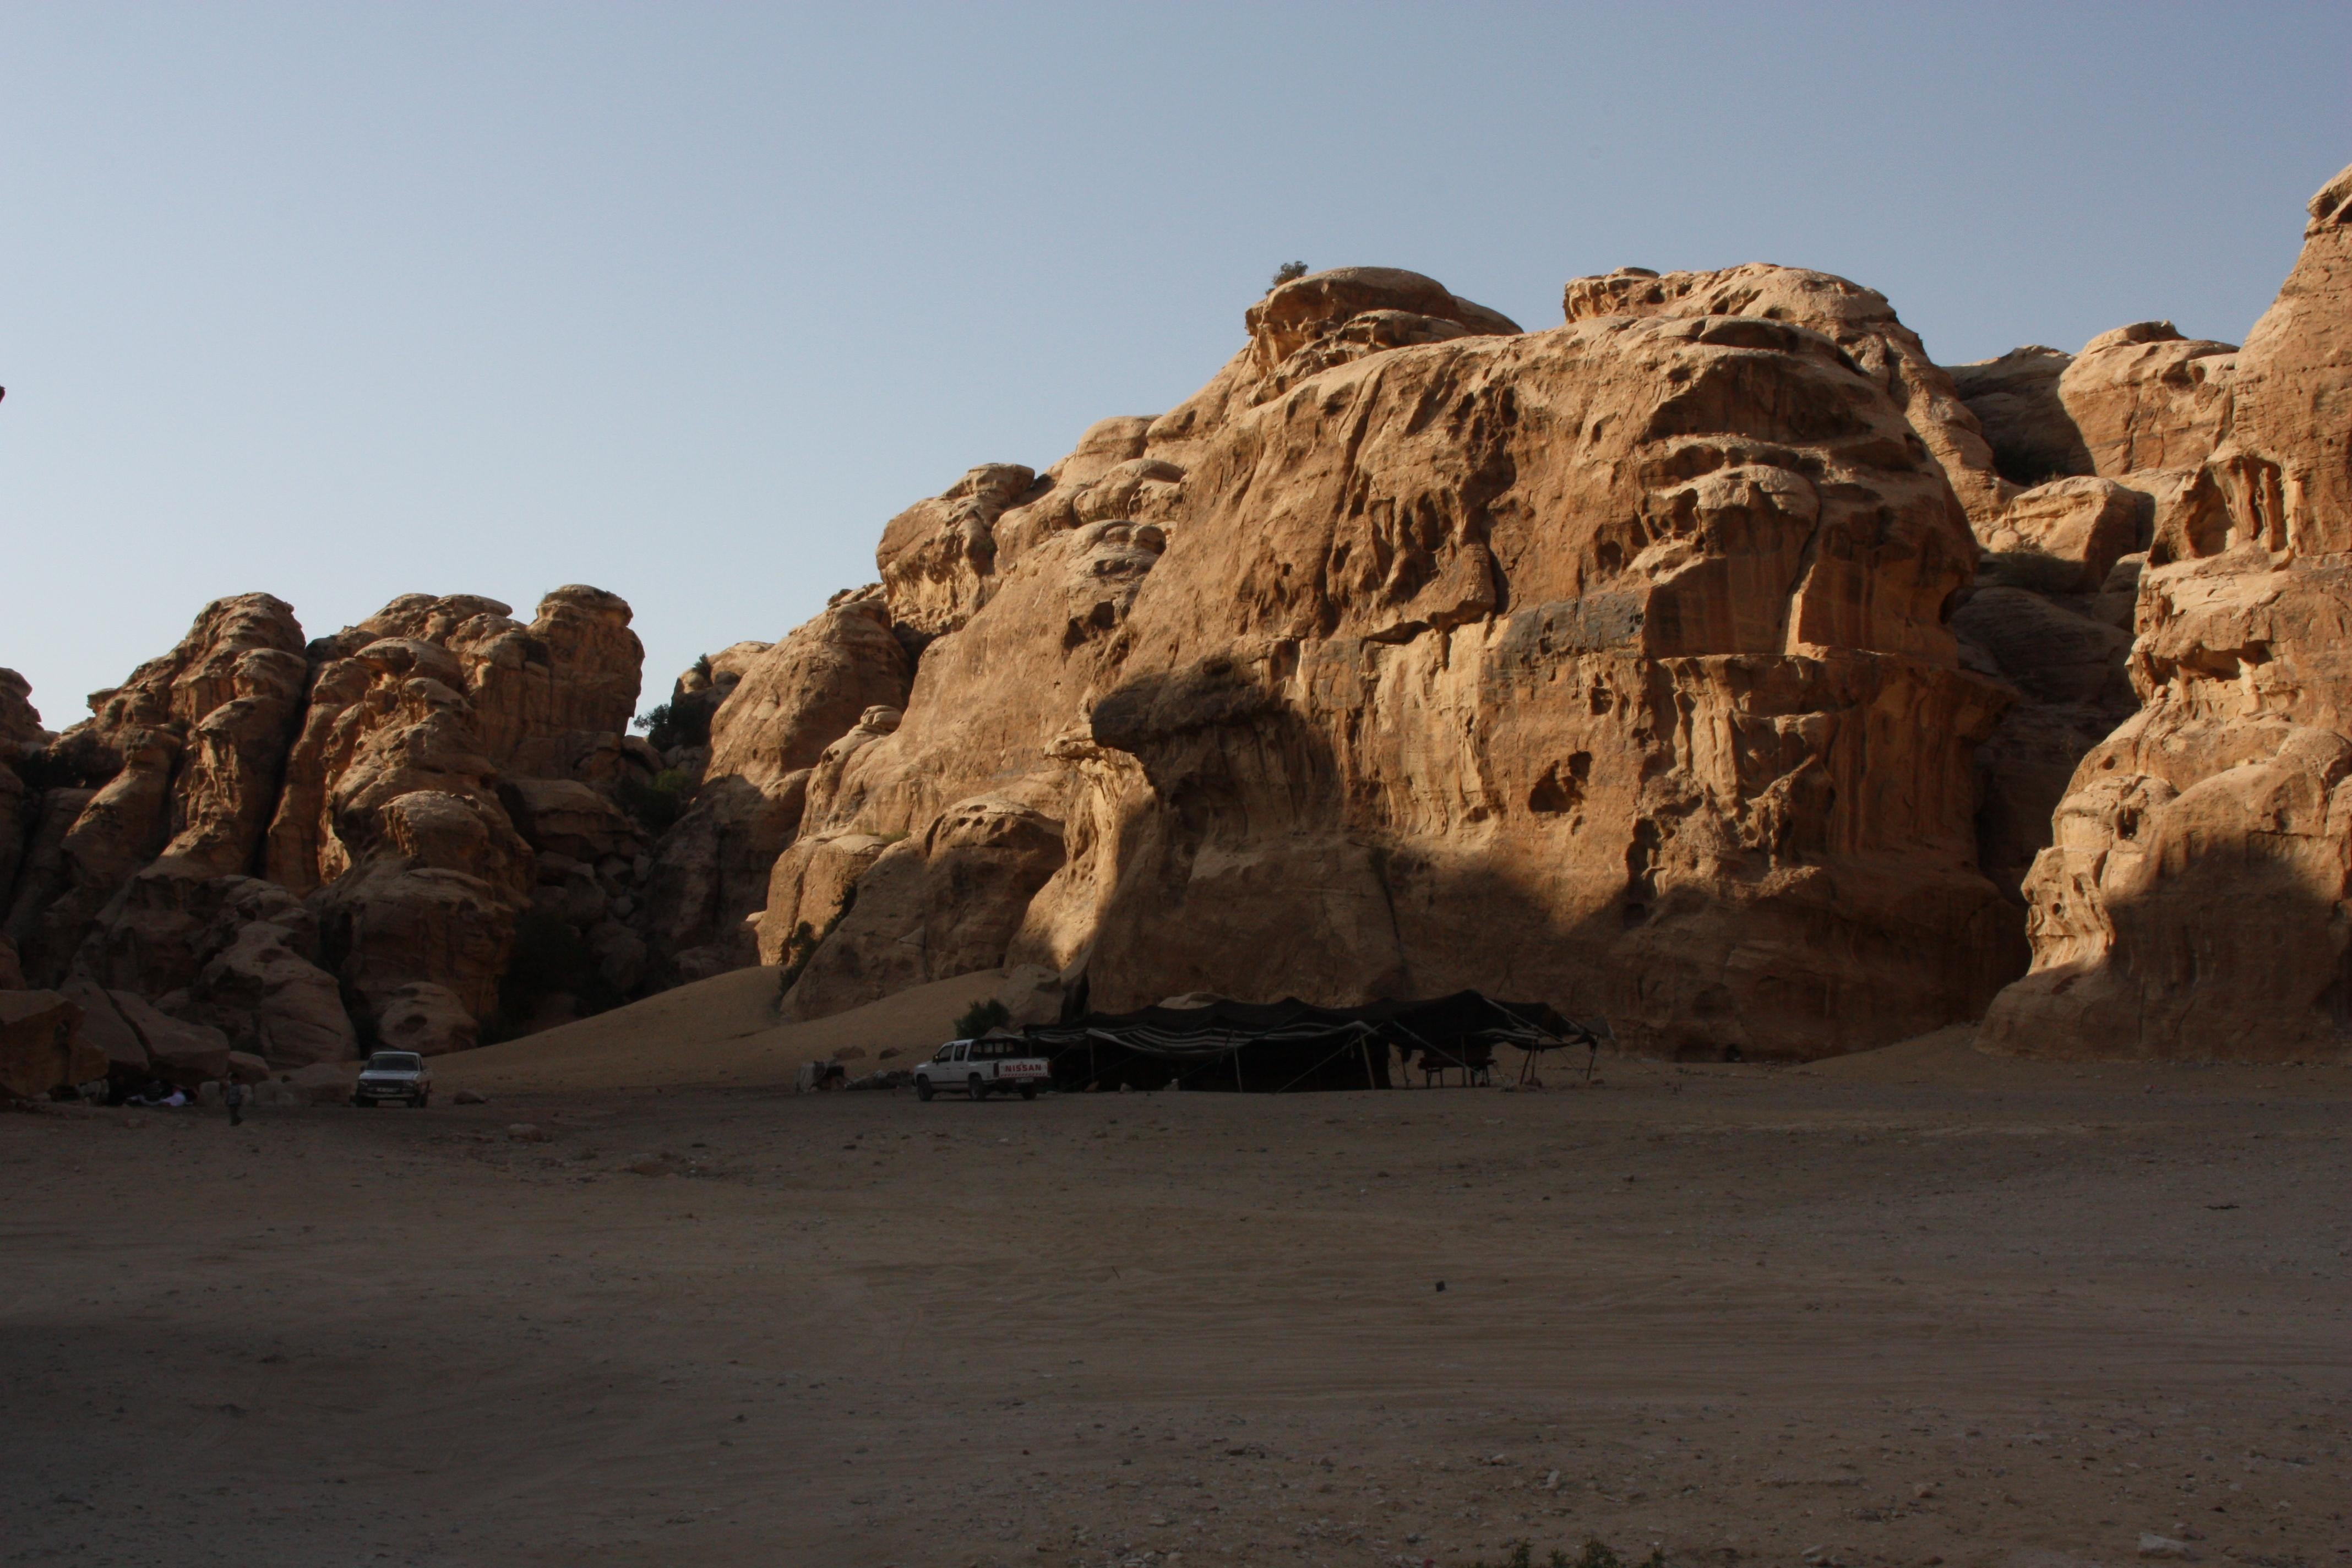 Mar en Siq al-Barid (Little Petra)